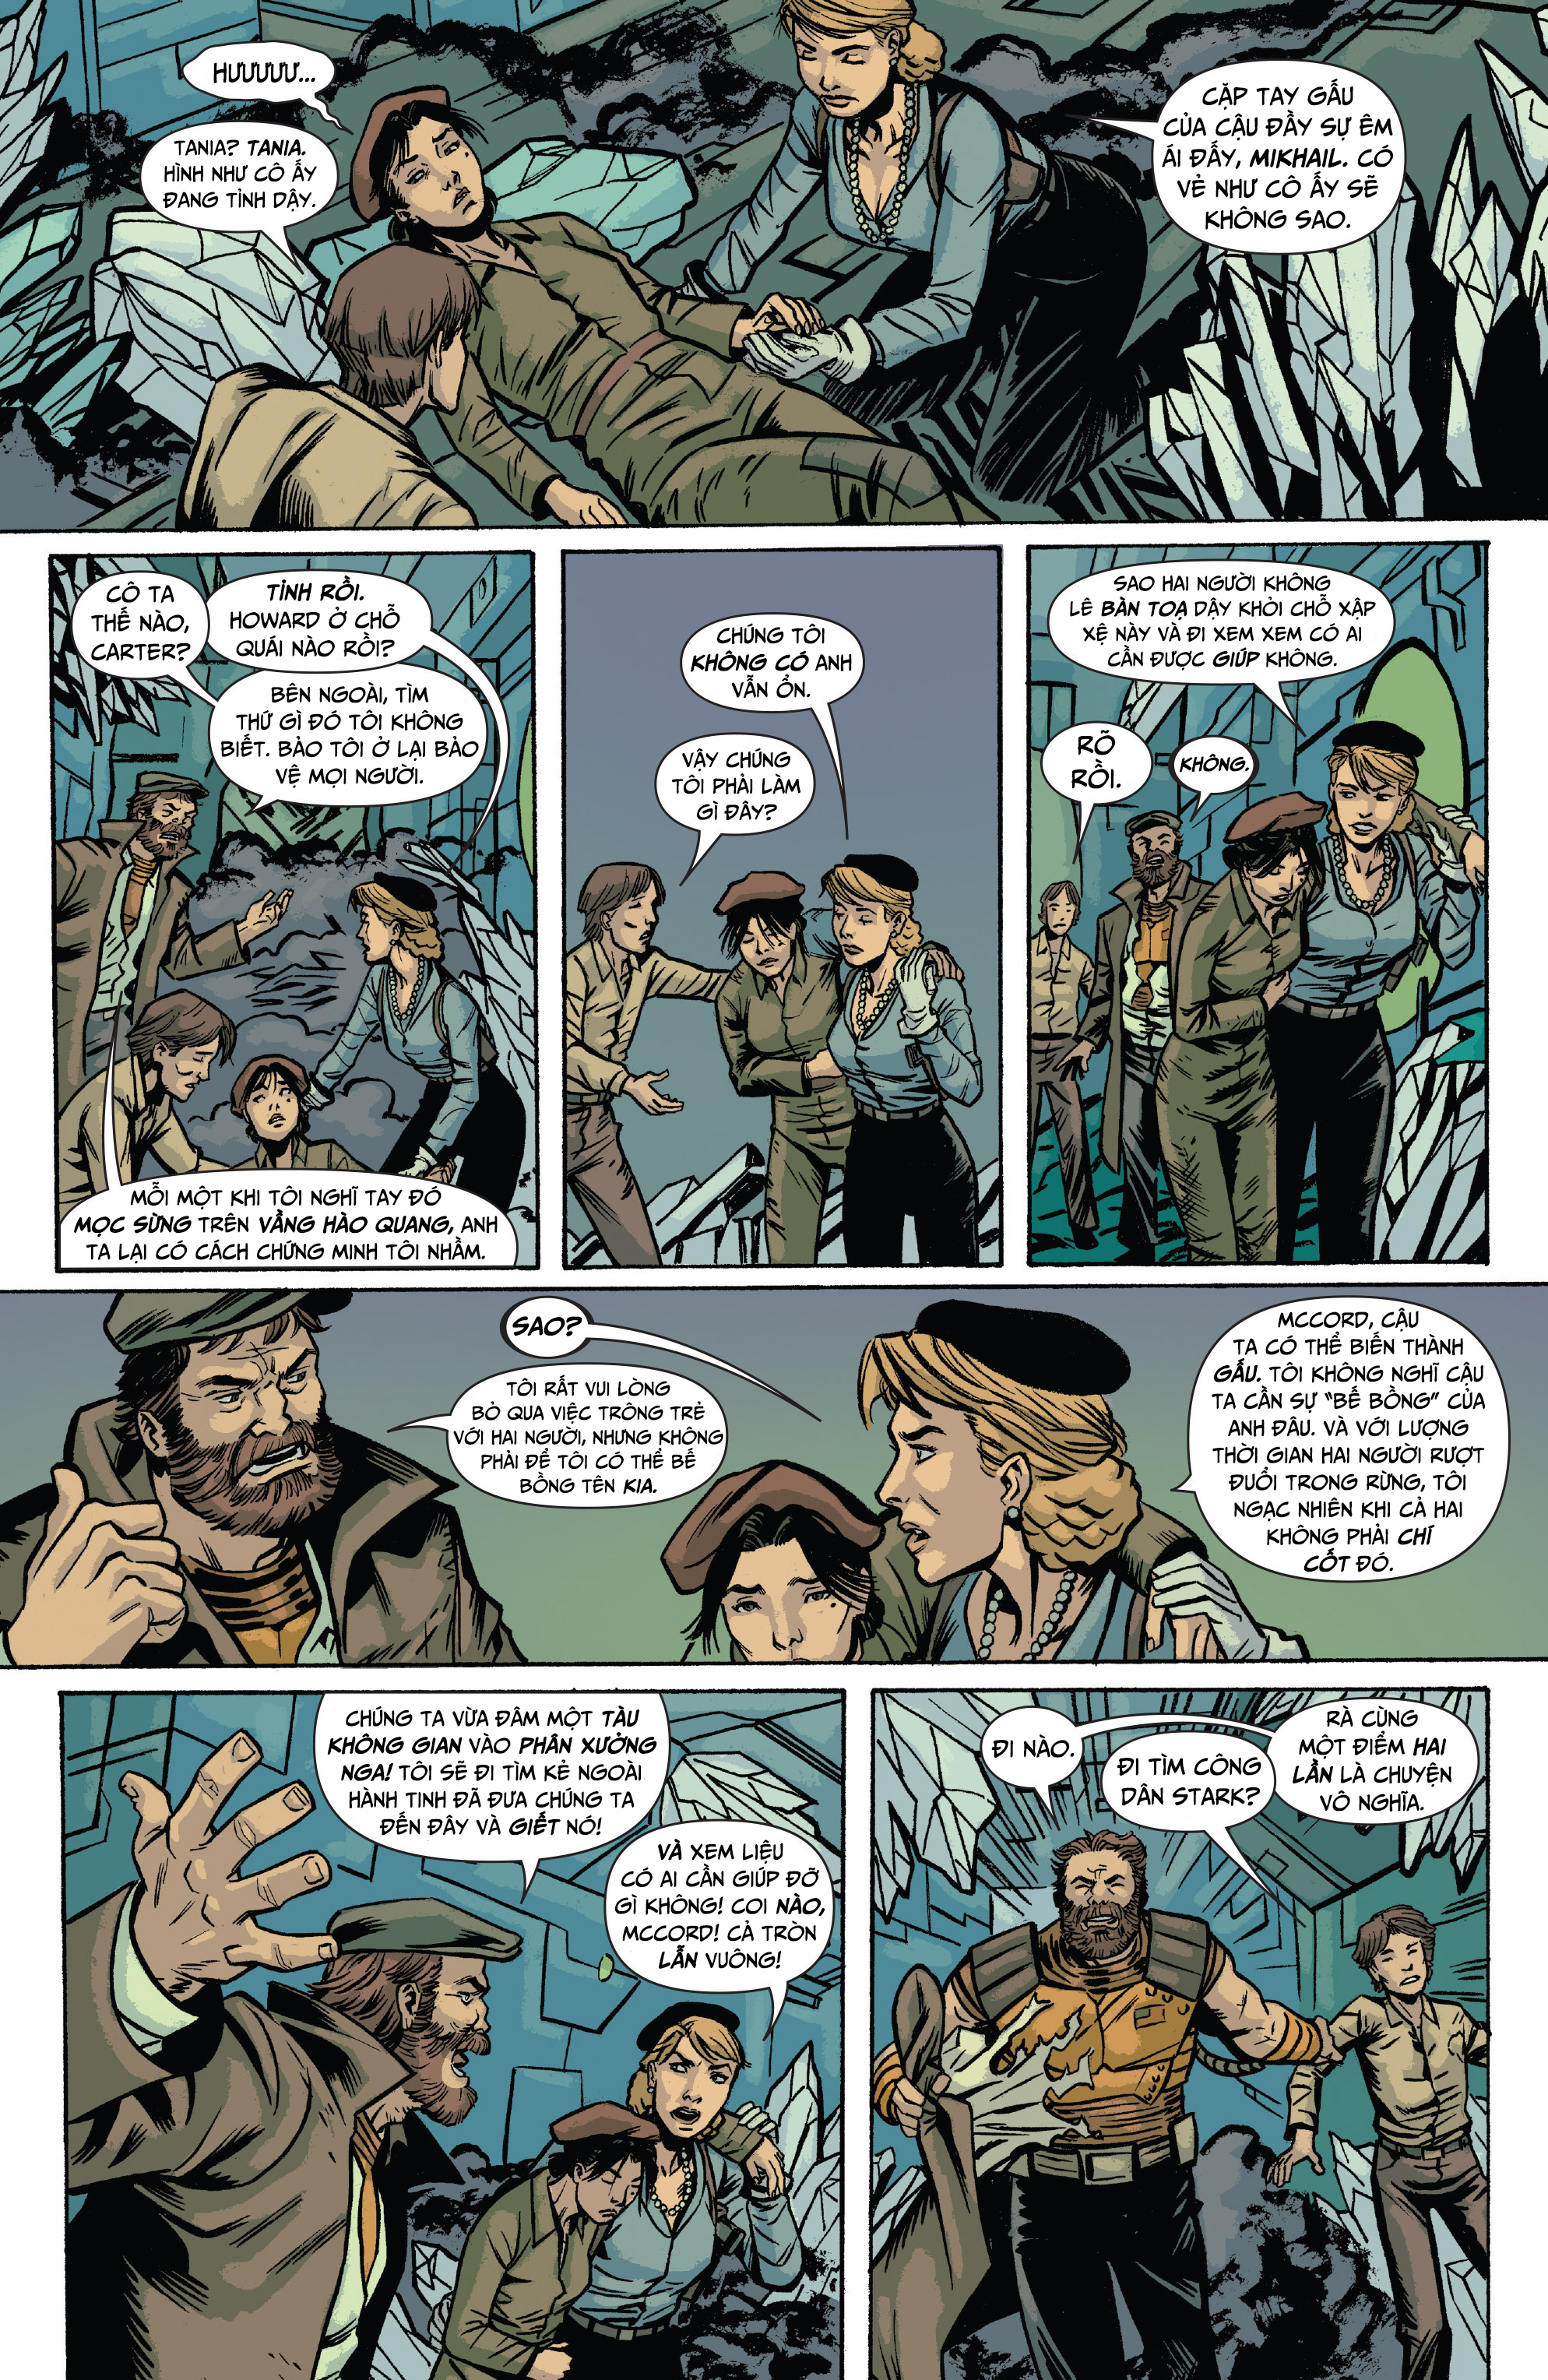 Operation S.I.N. - Chiến dịch S.I.N.